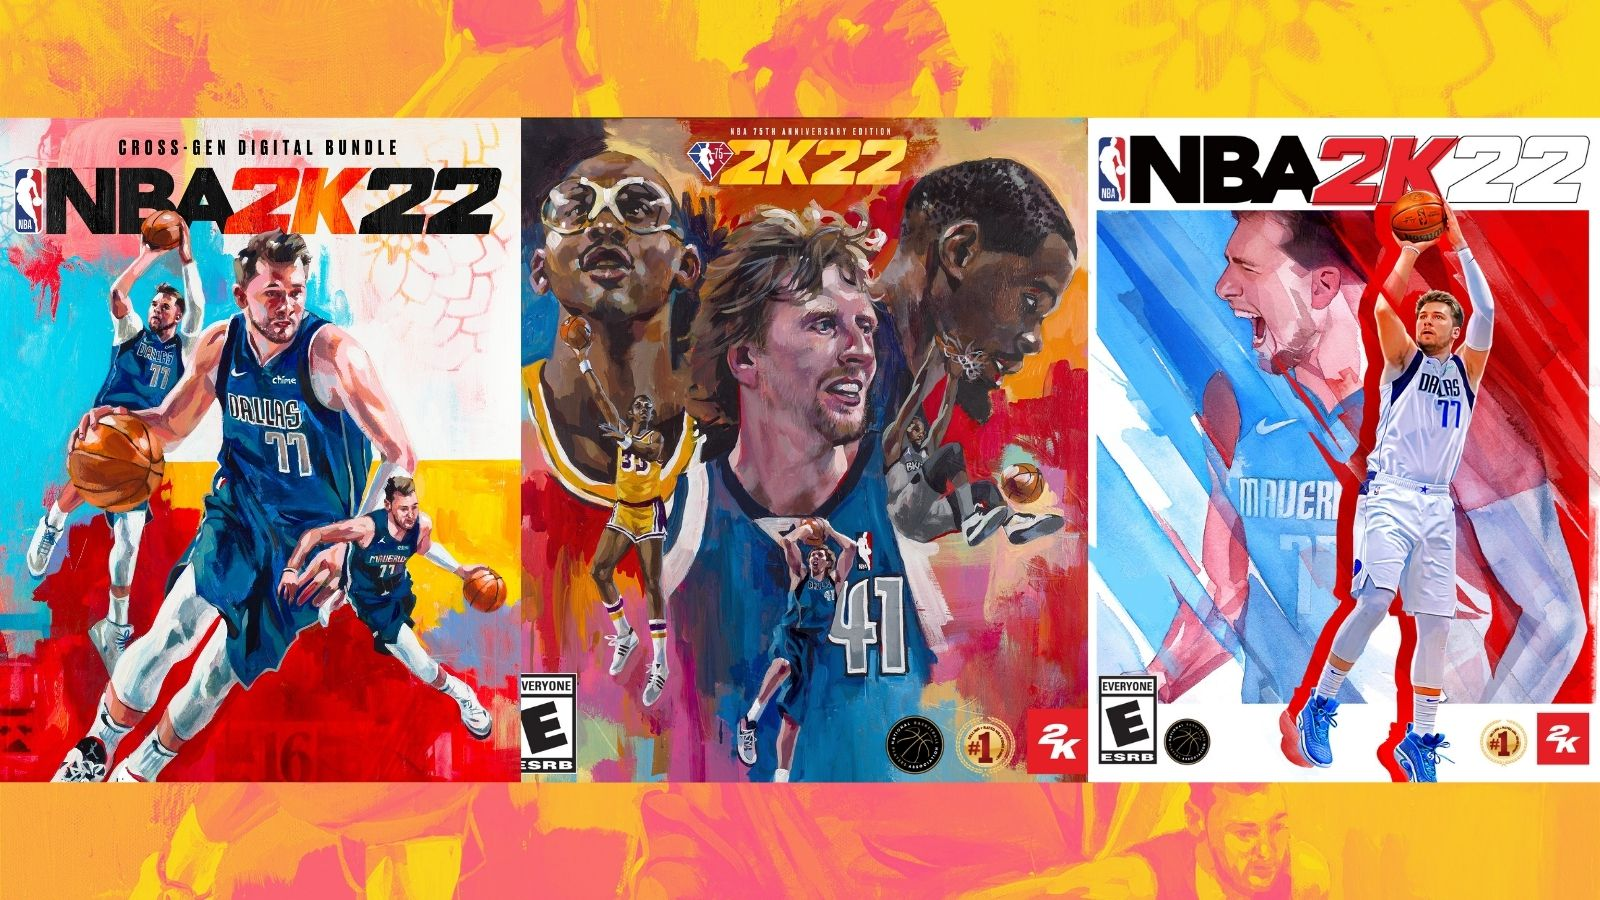 The legends edition cover of NBA 2K22, the latest entry in the basketball video game series, features Mavericks legend Dirk Nowitzki along with Kevin Durant and Kareem Abdul-Jabbar. Other editions, like the cross-gen digital bundle, feature Mavericks guard Luka Doncic.